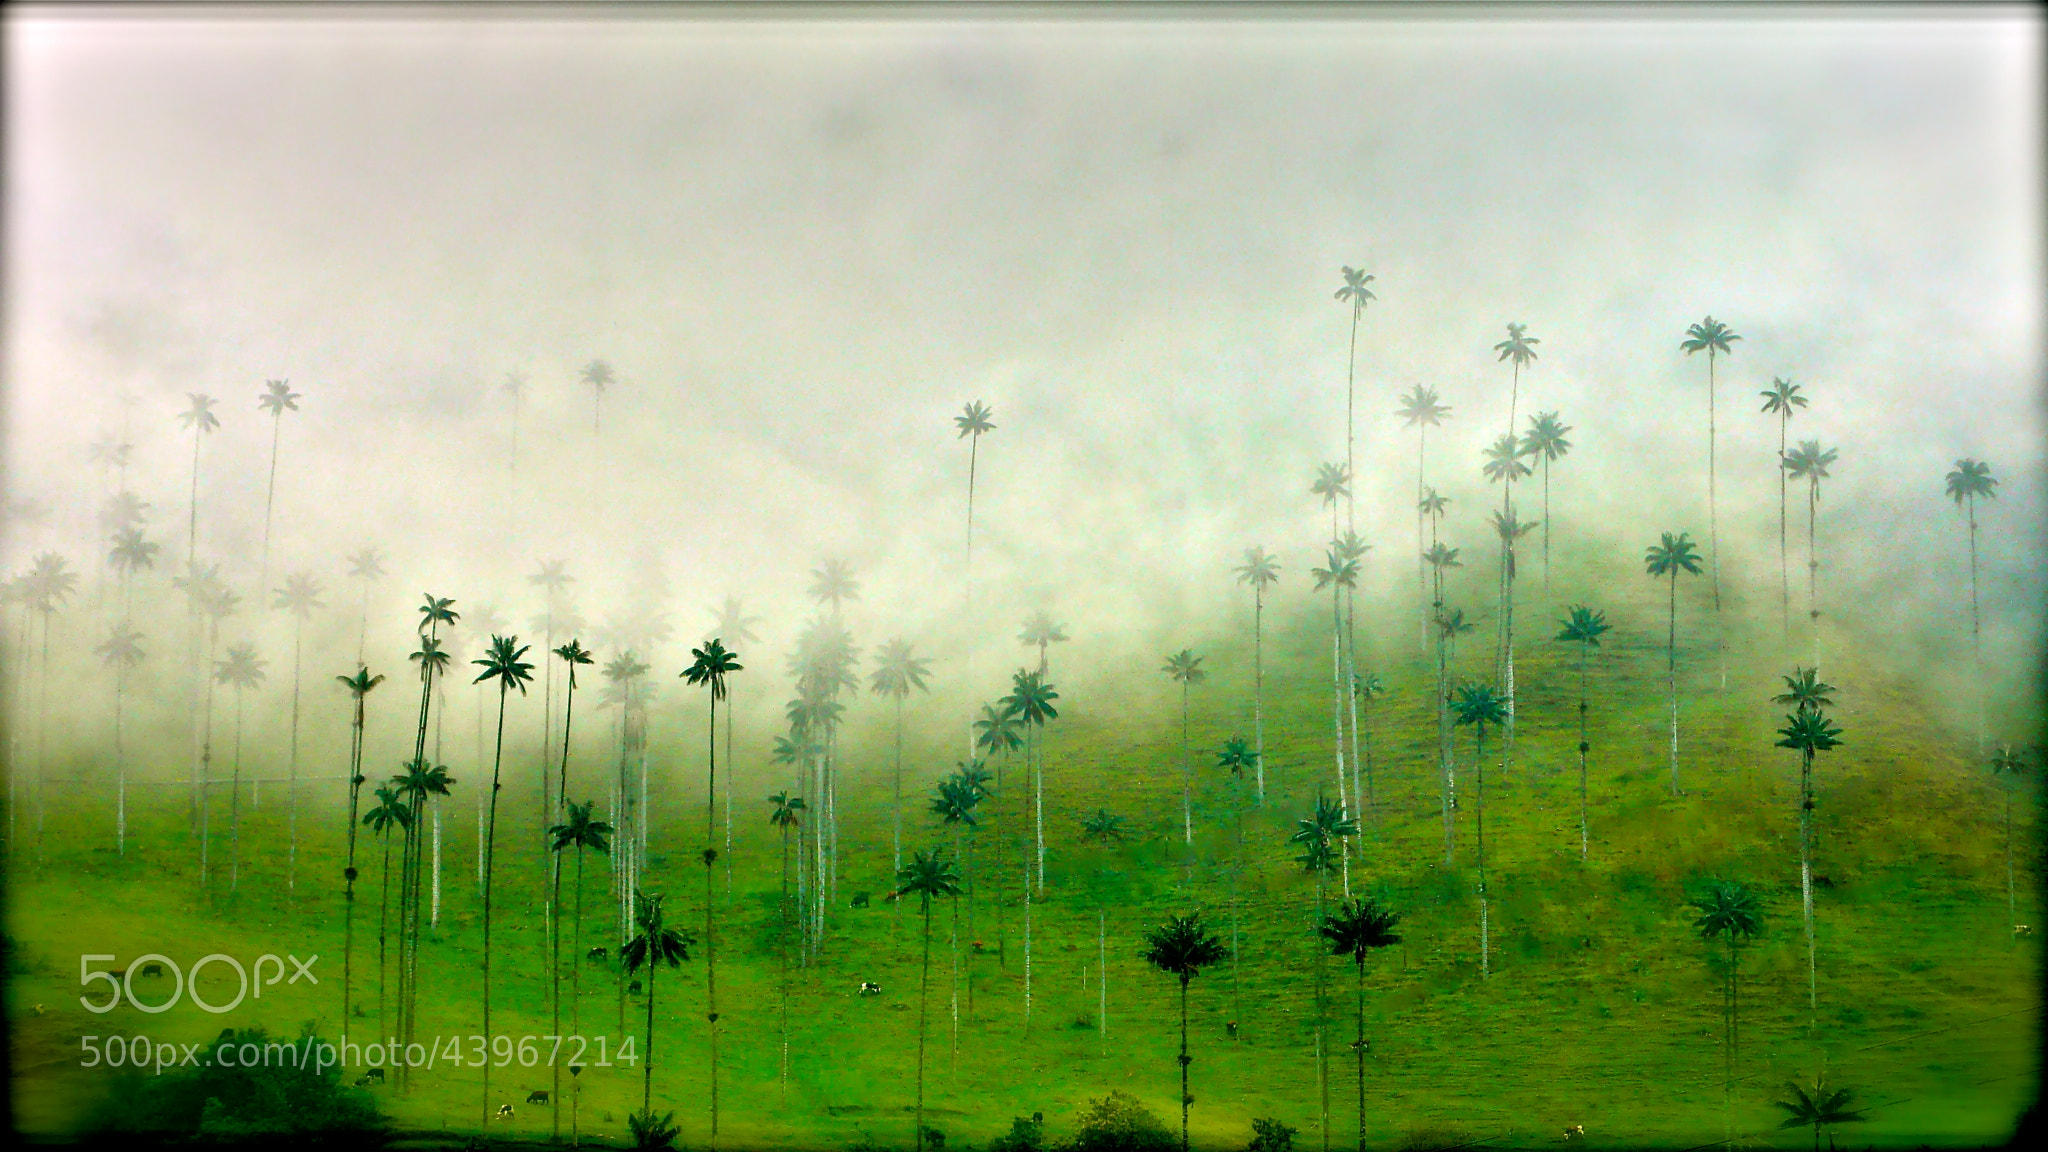 Photograph The tallest palm trees in the world! by oscar parra on 500px